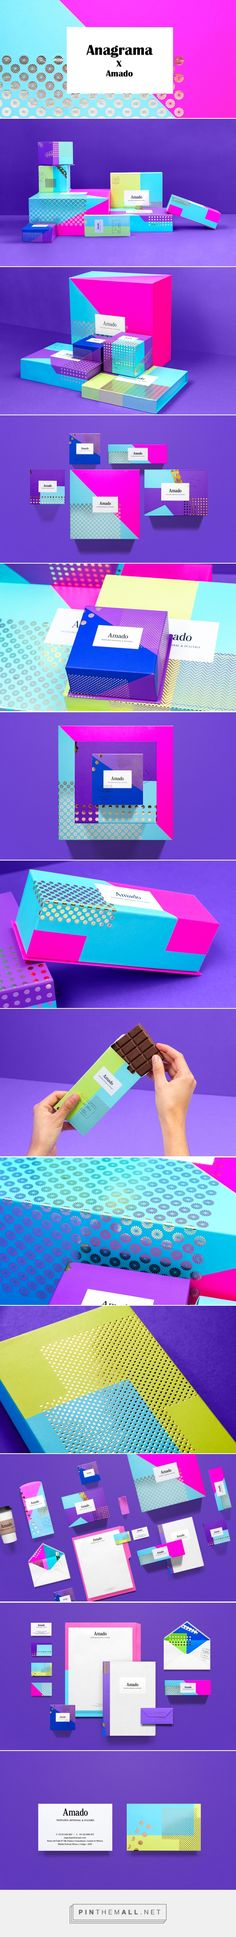 Design Today: Anagrama X Amado  — The Dieline - Branding & Packaging - created via https://pinthemall.net